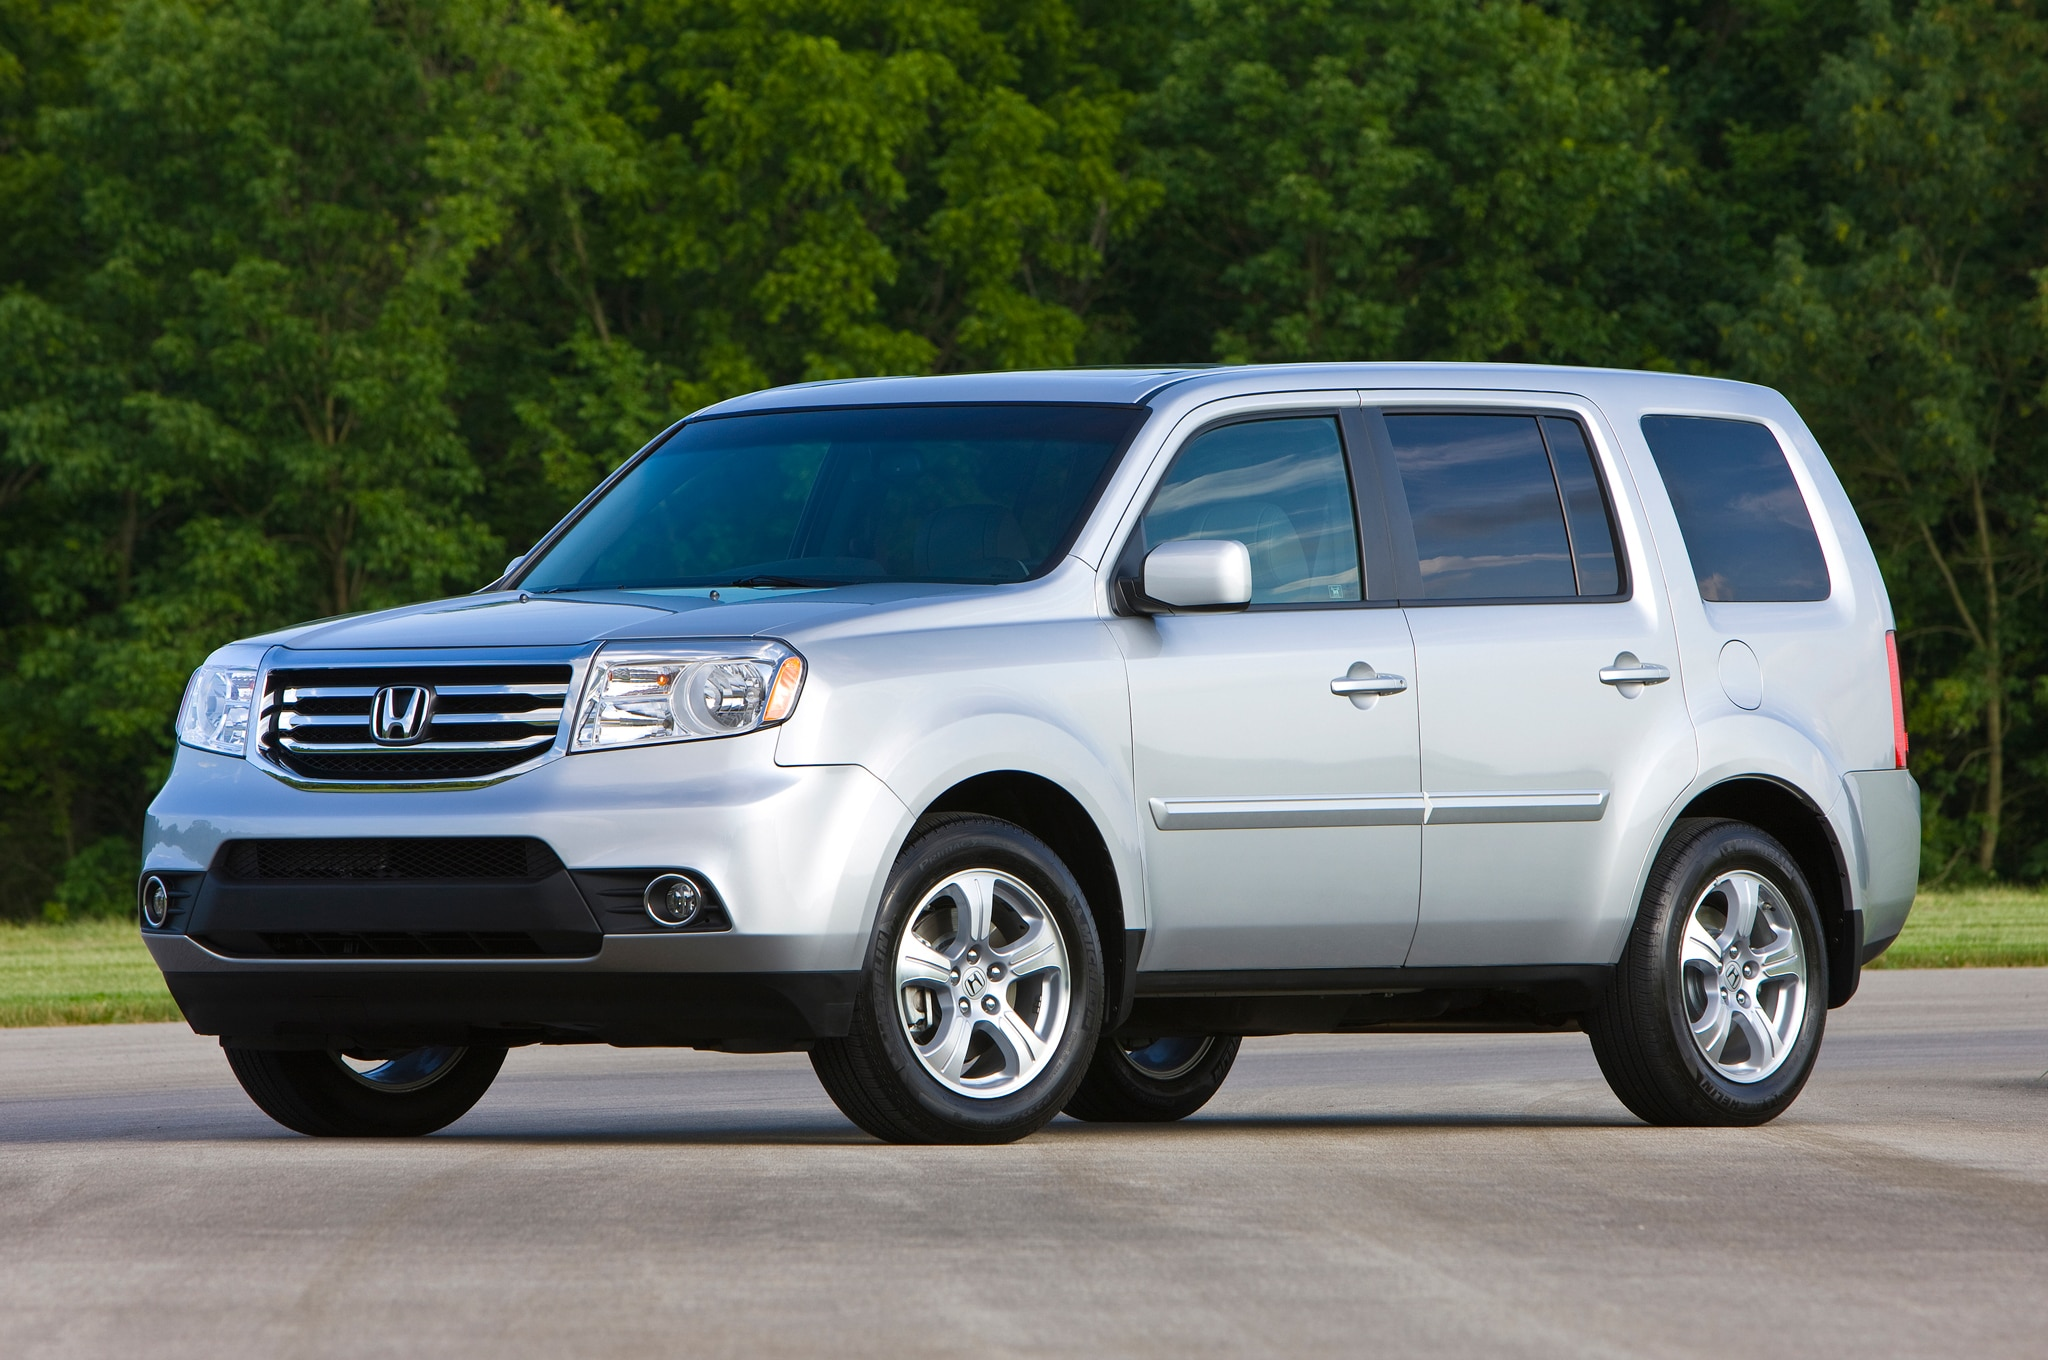 2014 Honda Pilot Photo Gallery